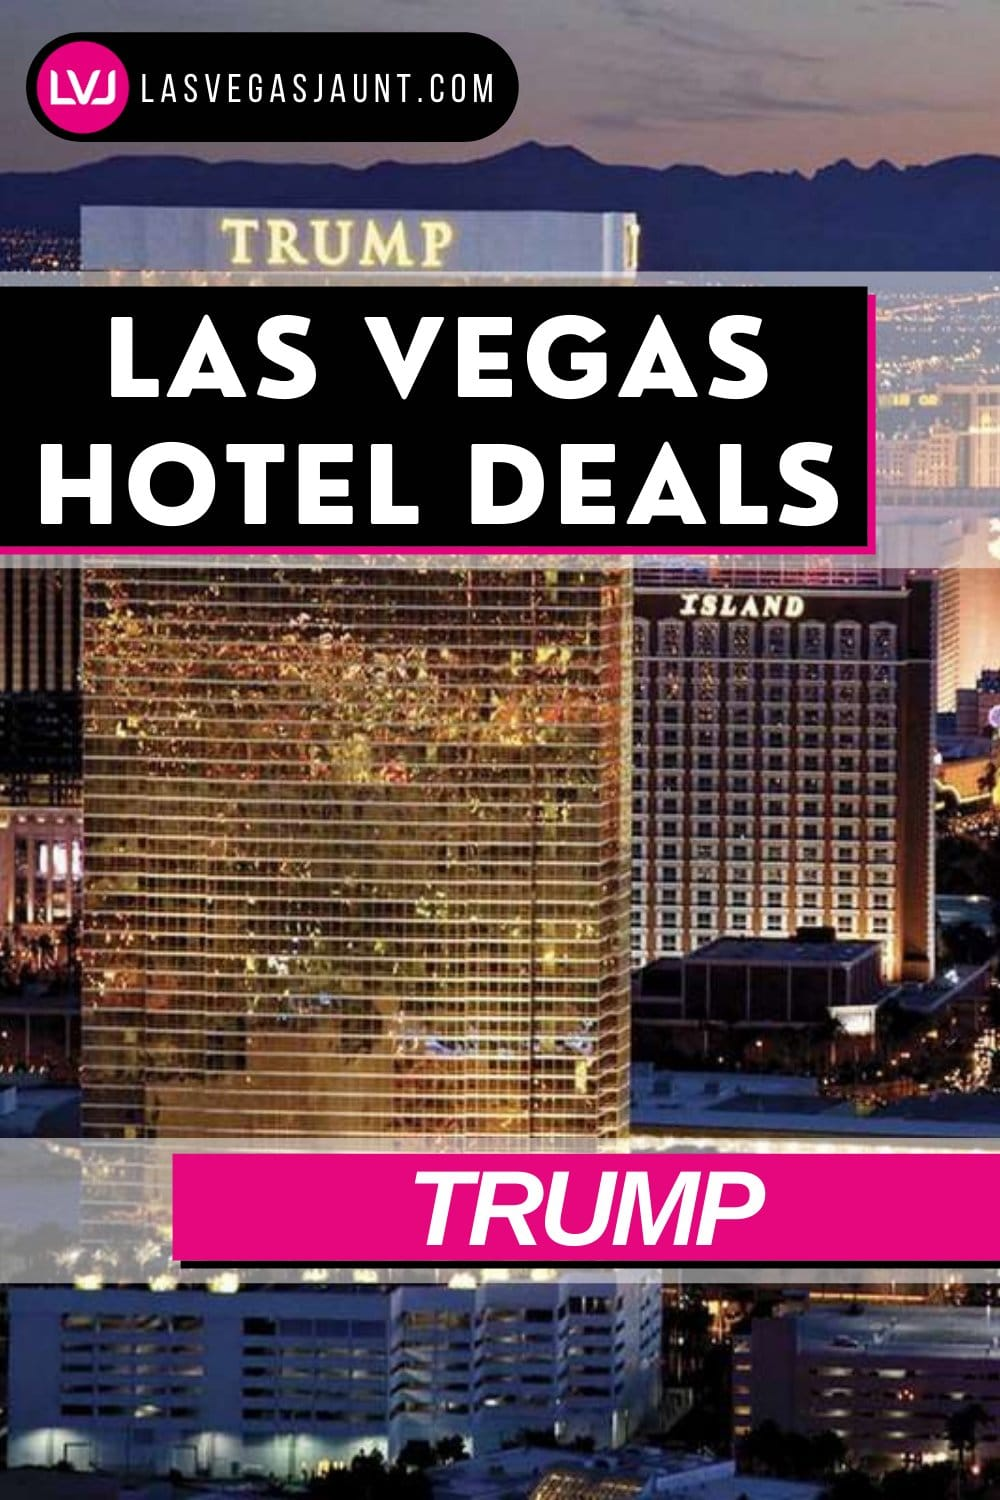 Trump Hotel Las Vegas Deals Promo Codes & Discounts